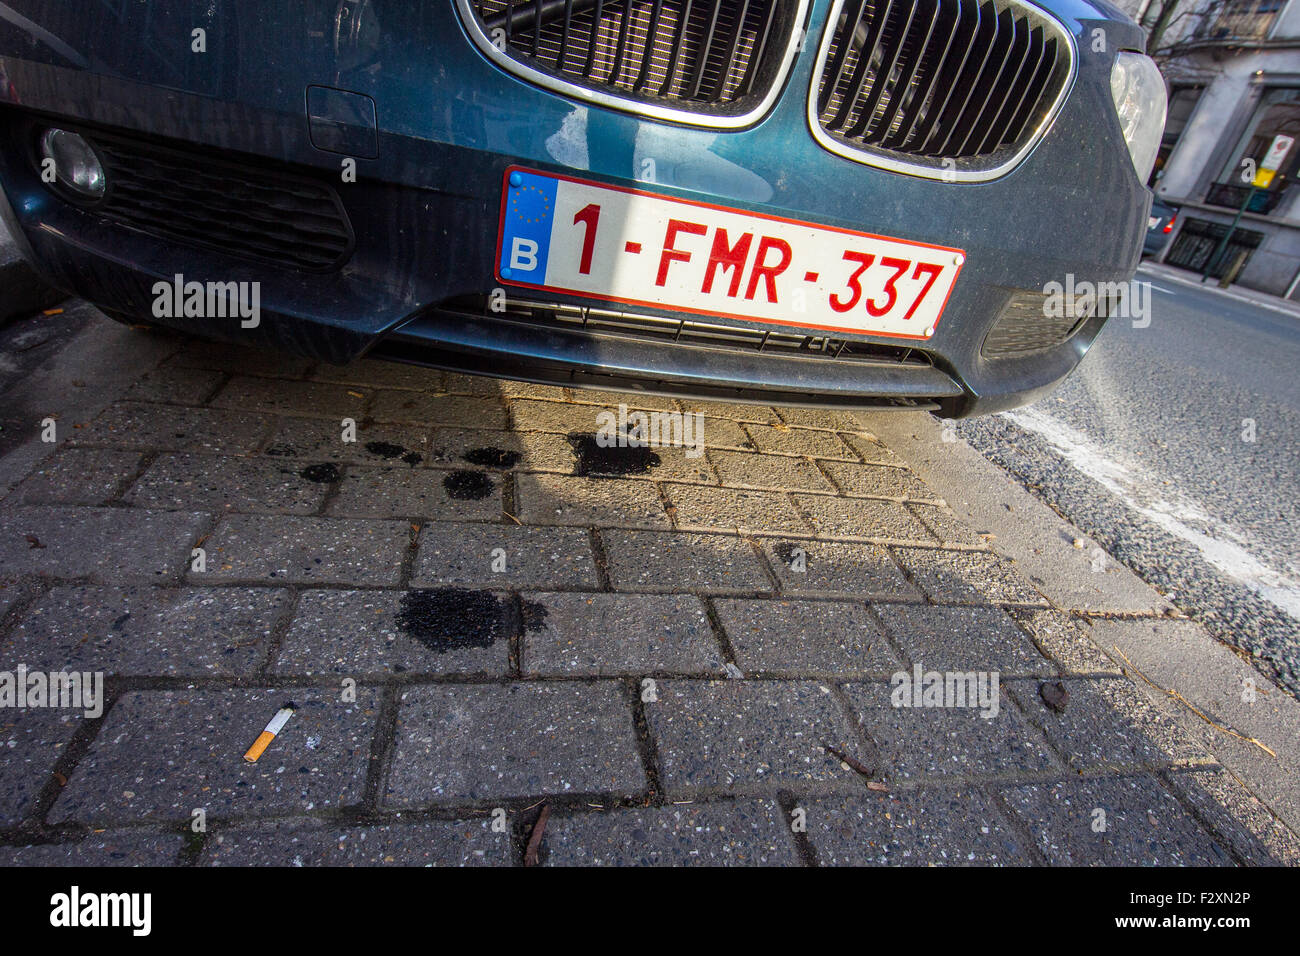 oil leak drip car vehicle street pavement sidewalk - Stock Image